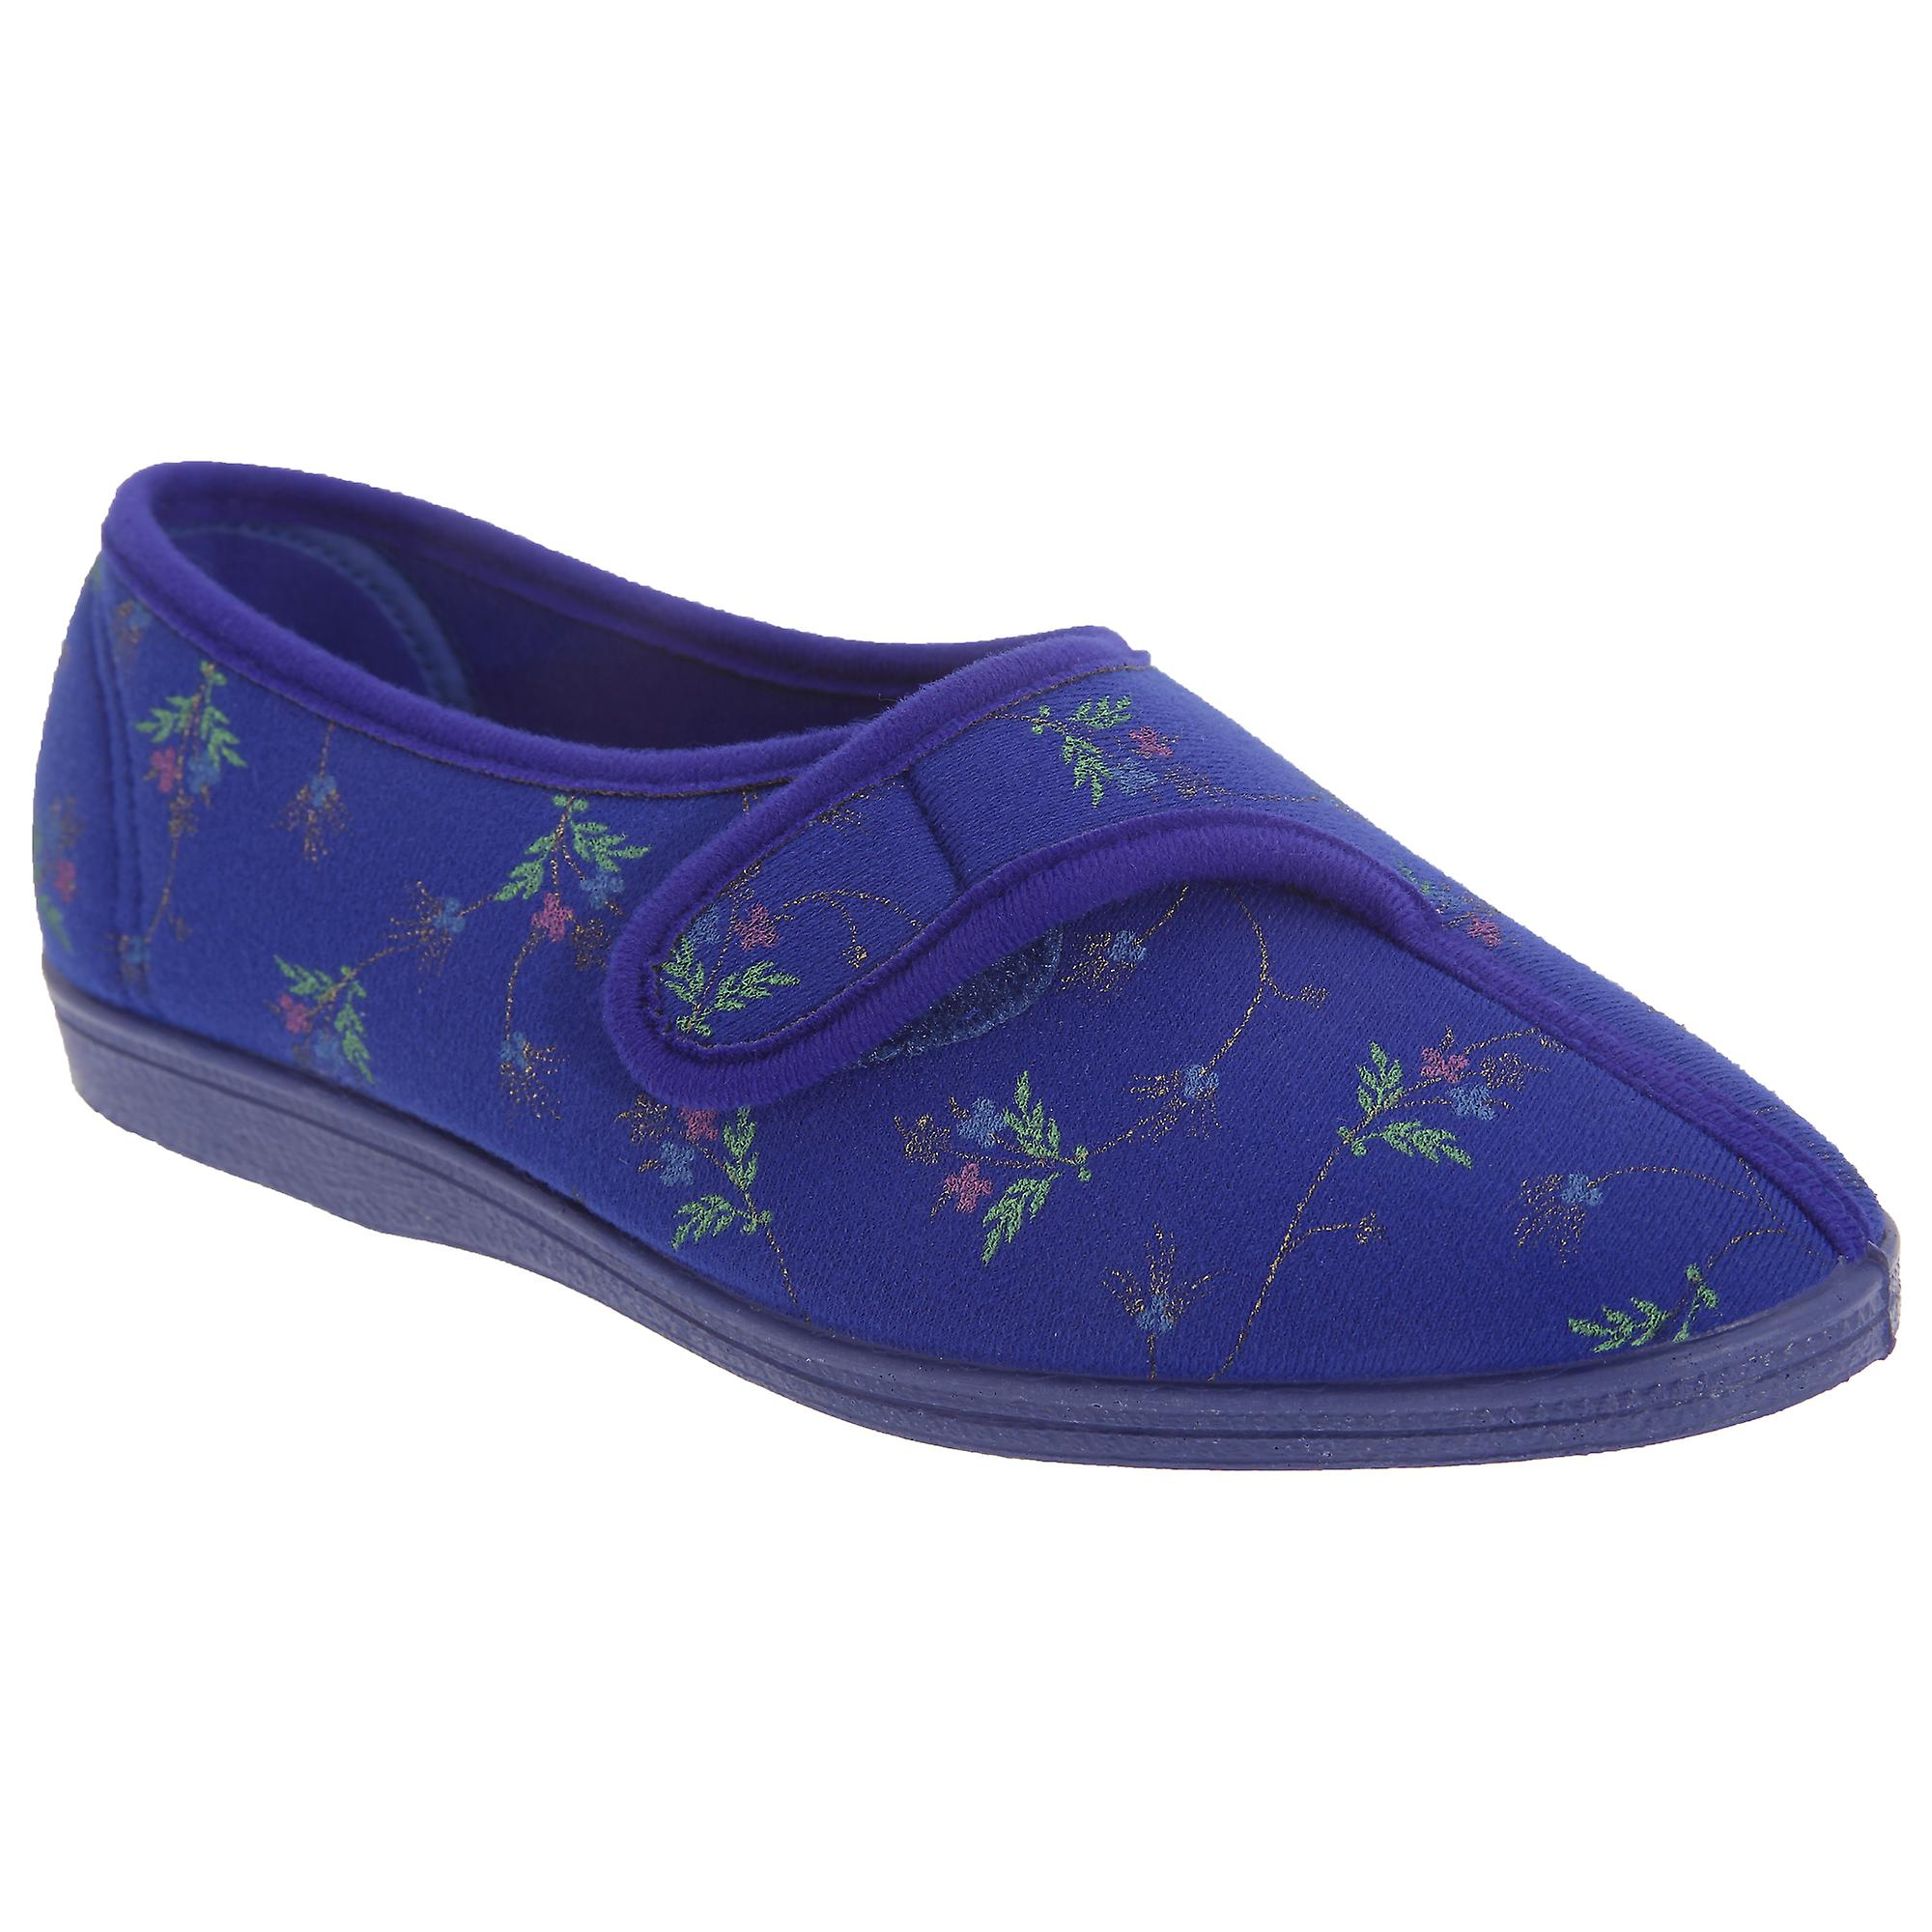 Ladies Slippers Touch Floral Dora Womens Sleepers Fastening w6q5SPnR